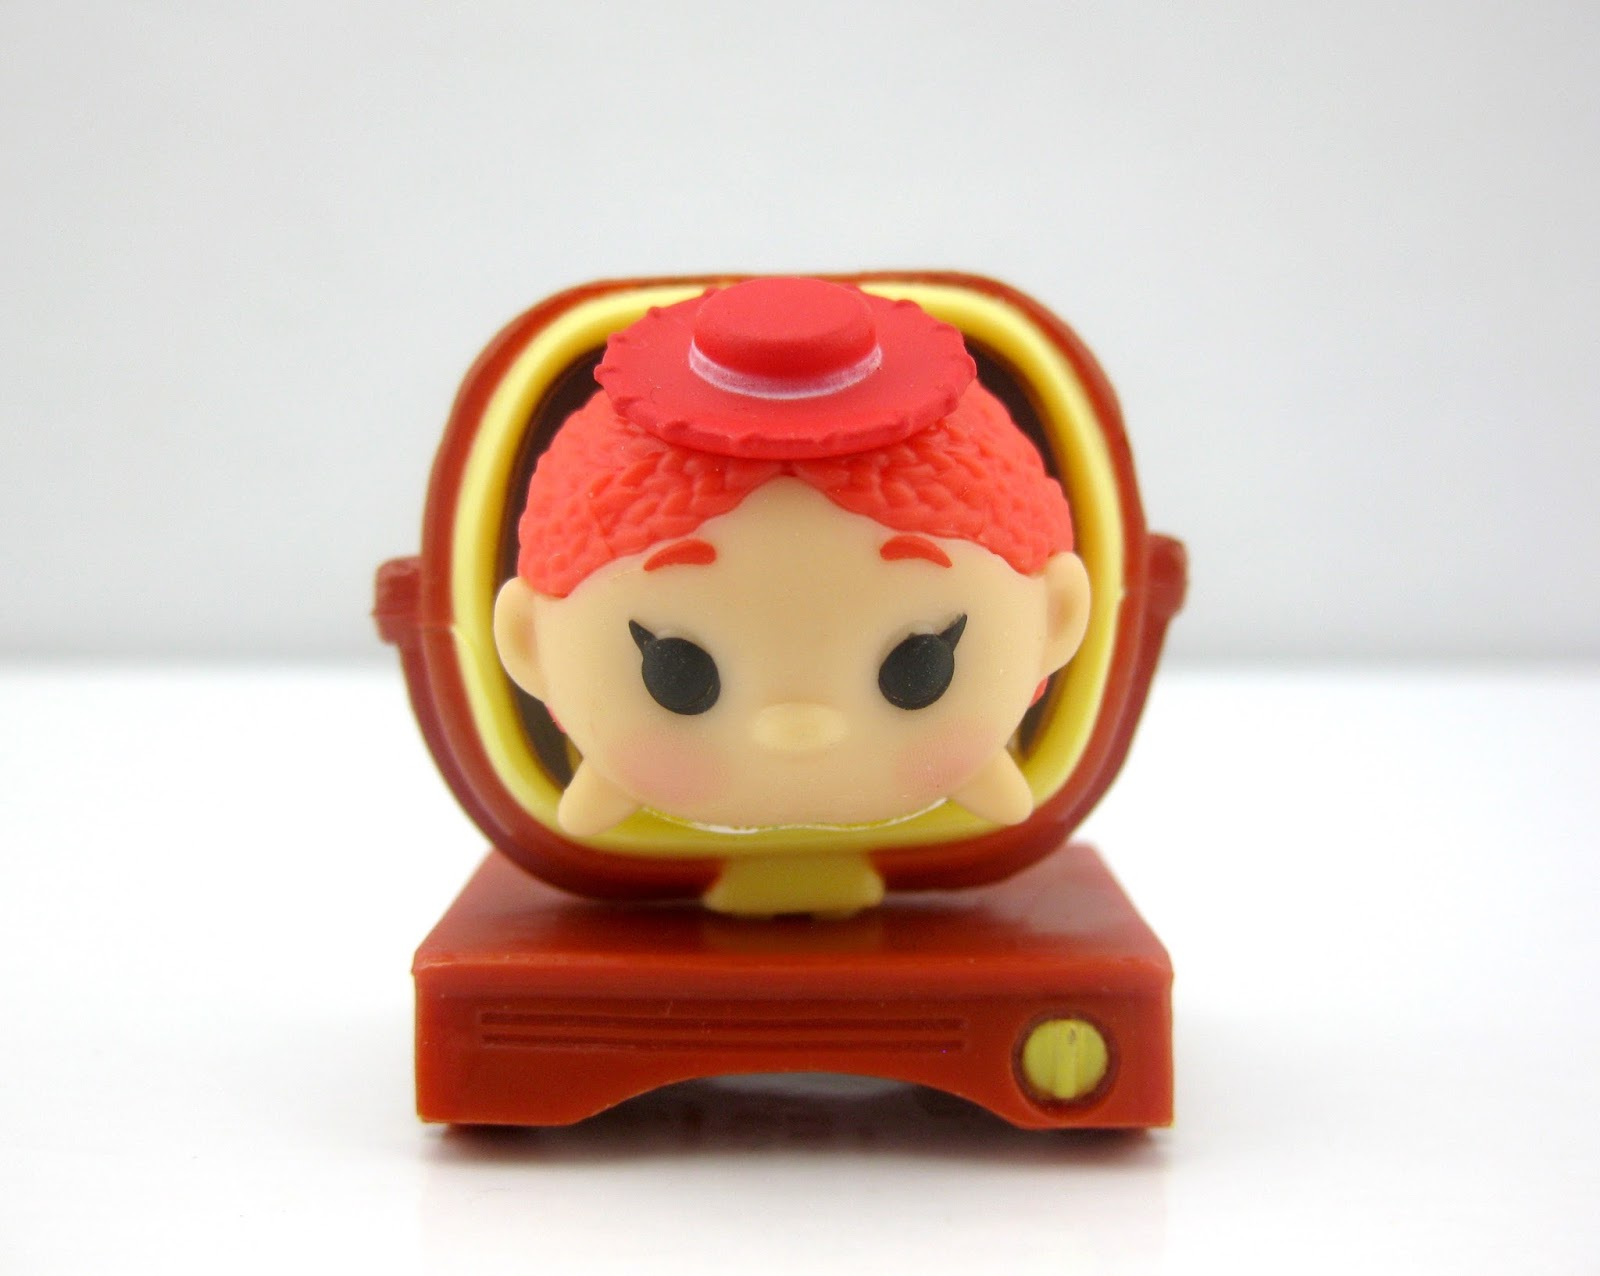 Disney Tsum Tsum Mystery Stack Packs by Jakks Pacific Series 5 jessie